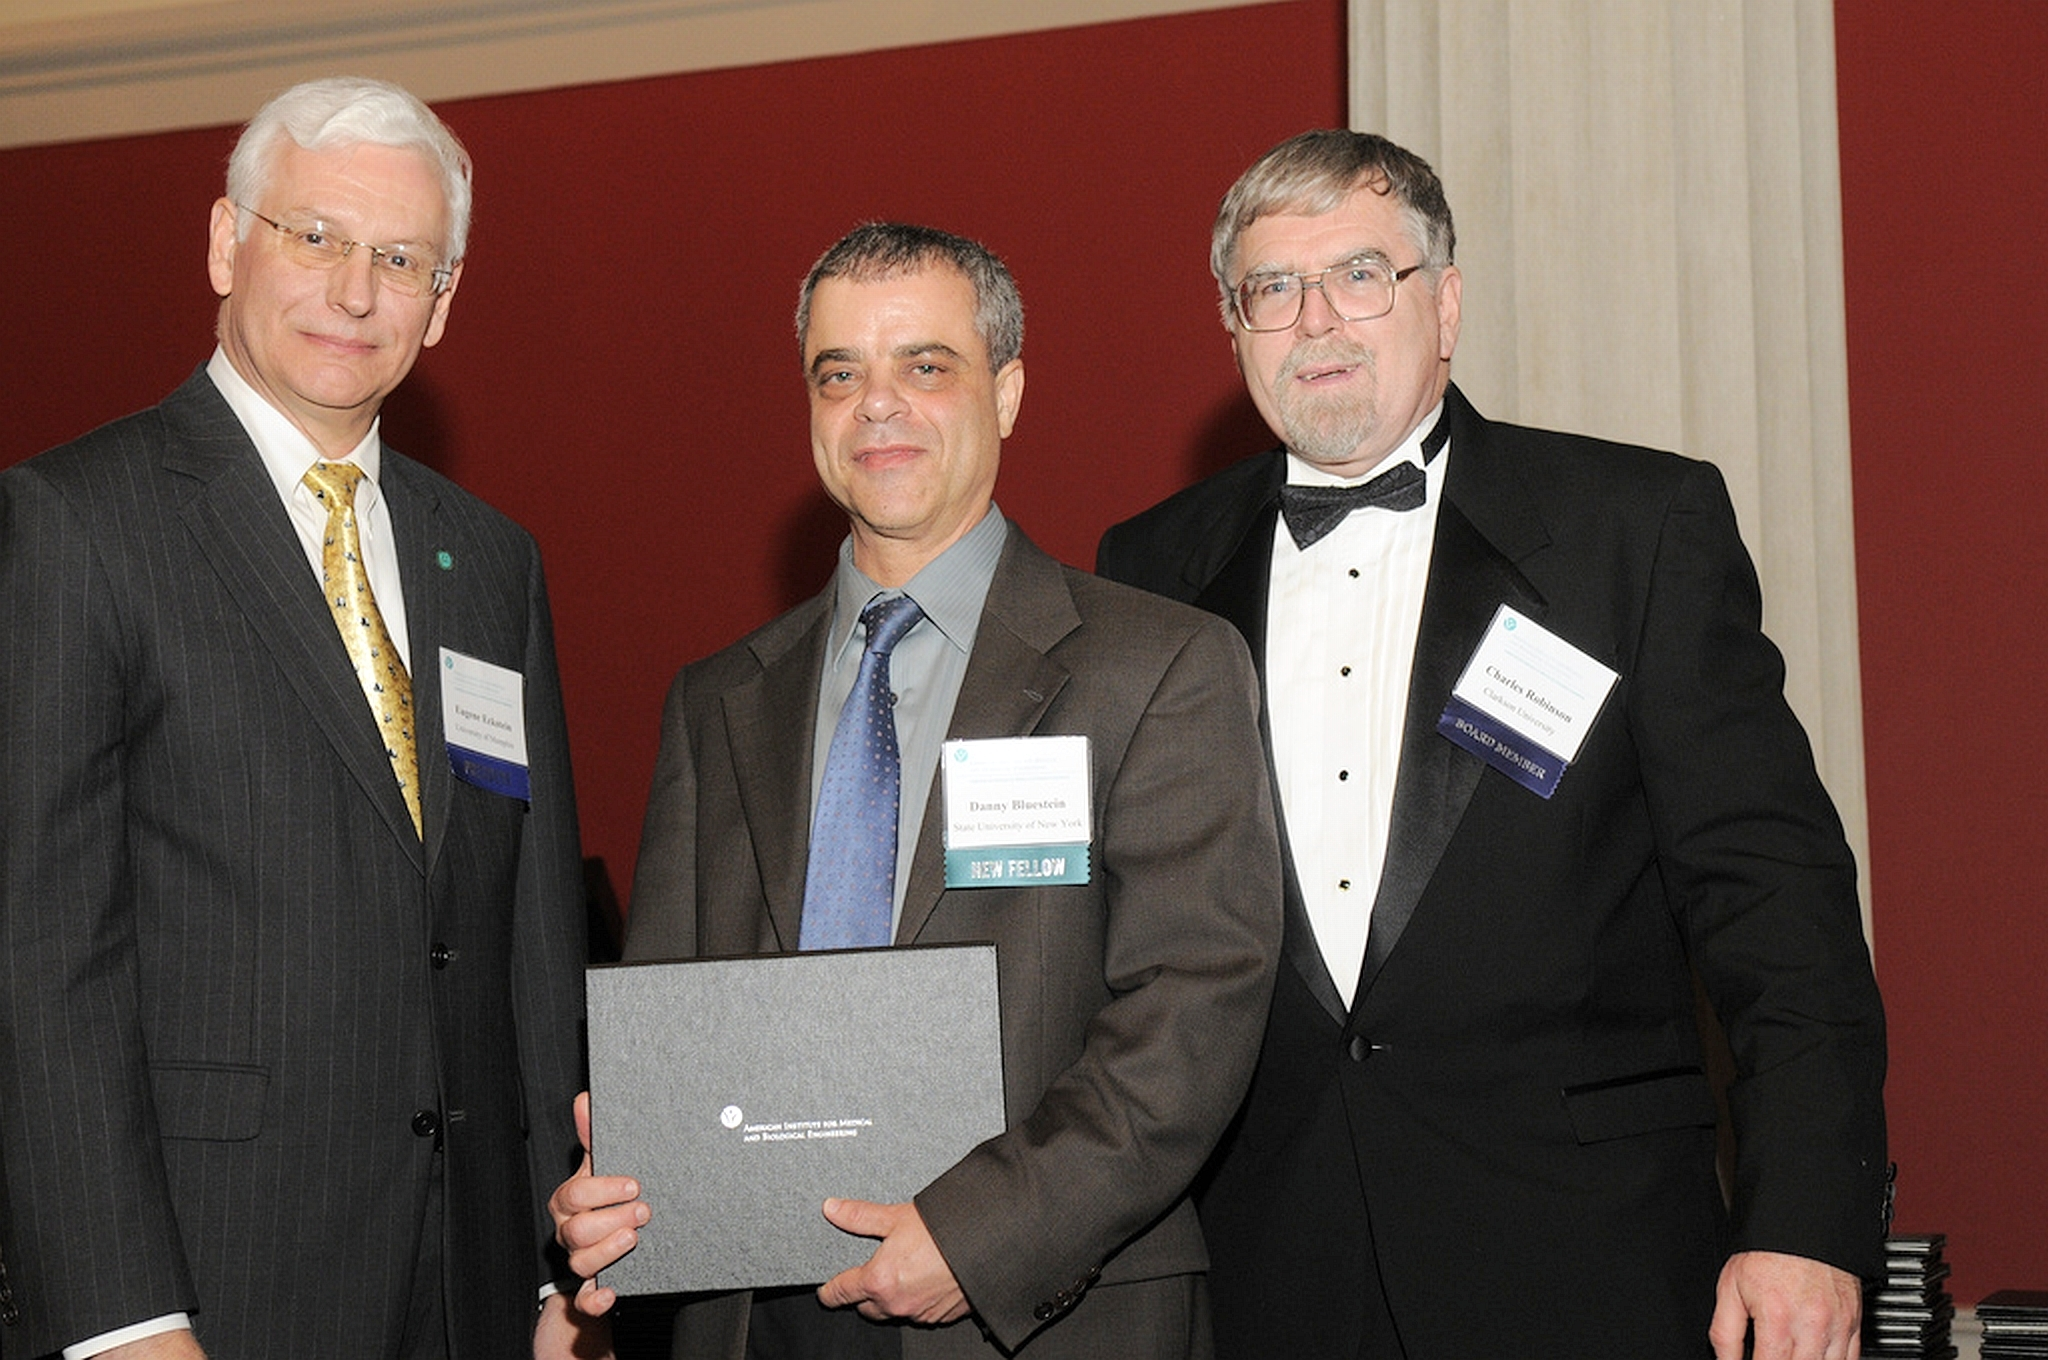 Danny Bluestein, standing between Professor Eugene Eckstein, AIMBE president (left) and Professor Charles J. Robinson, AIMBE vice president, at the AIMBE's College of Fellows awards ceremony.